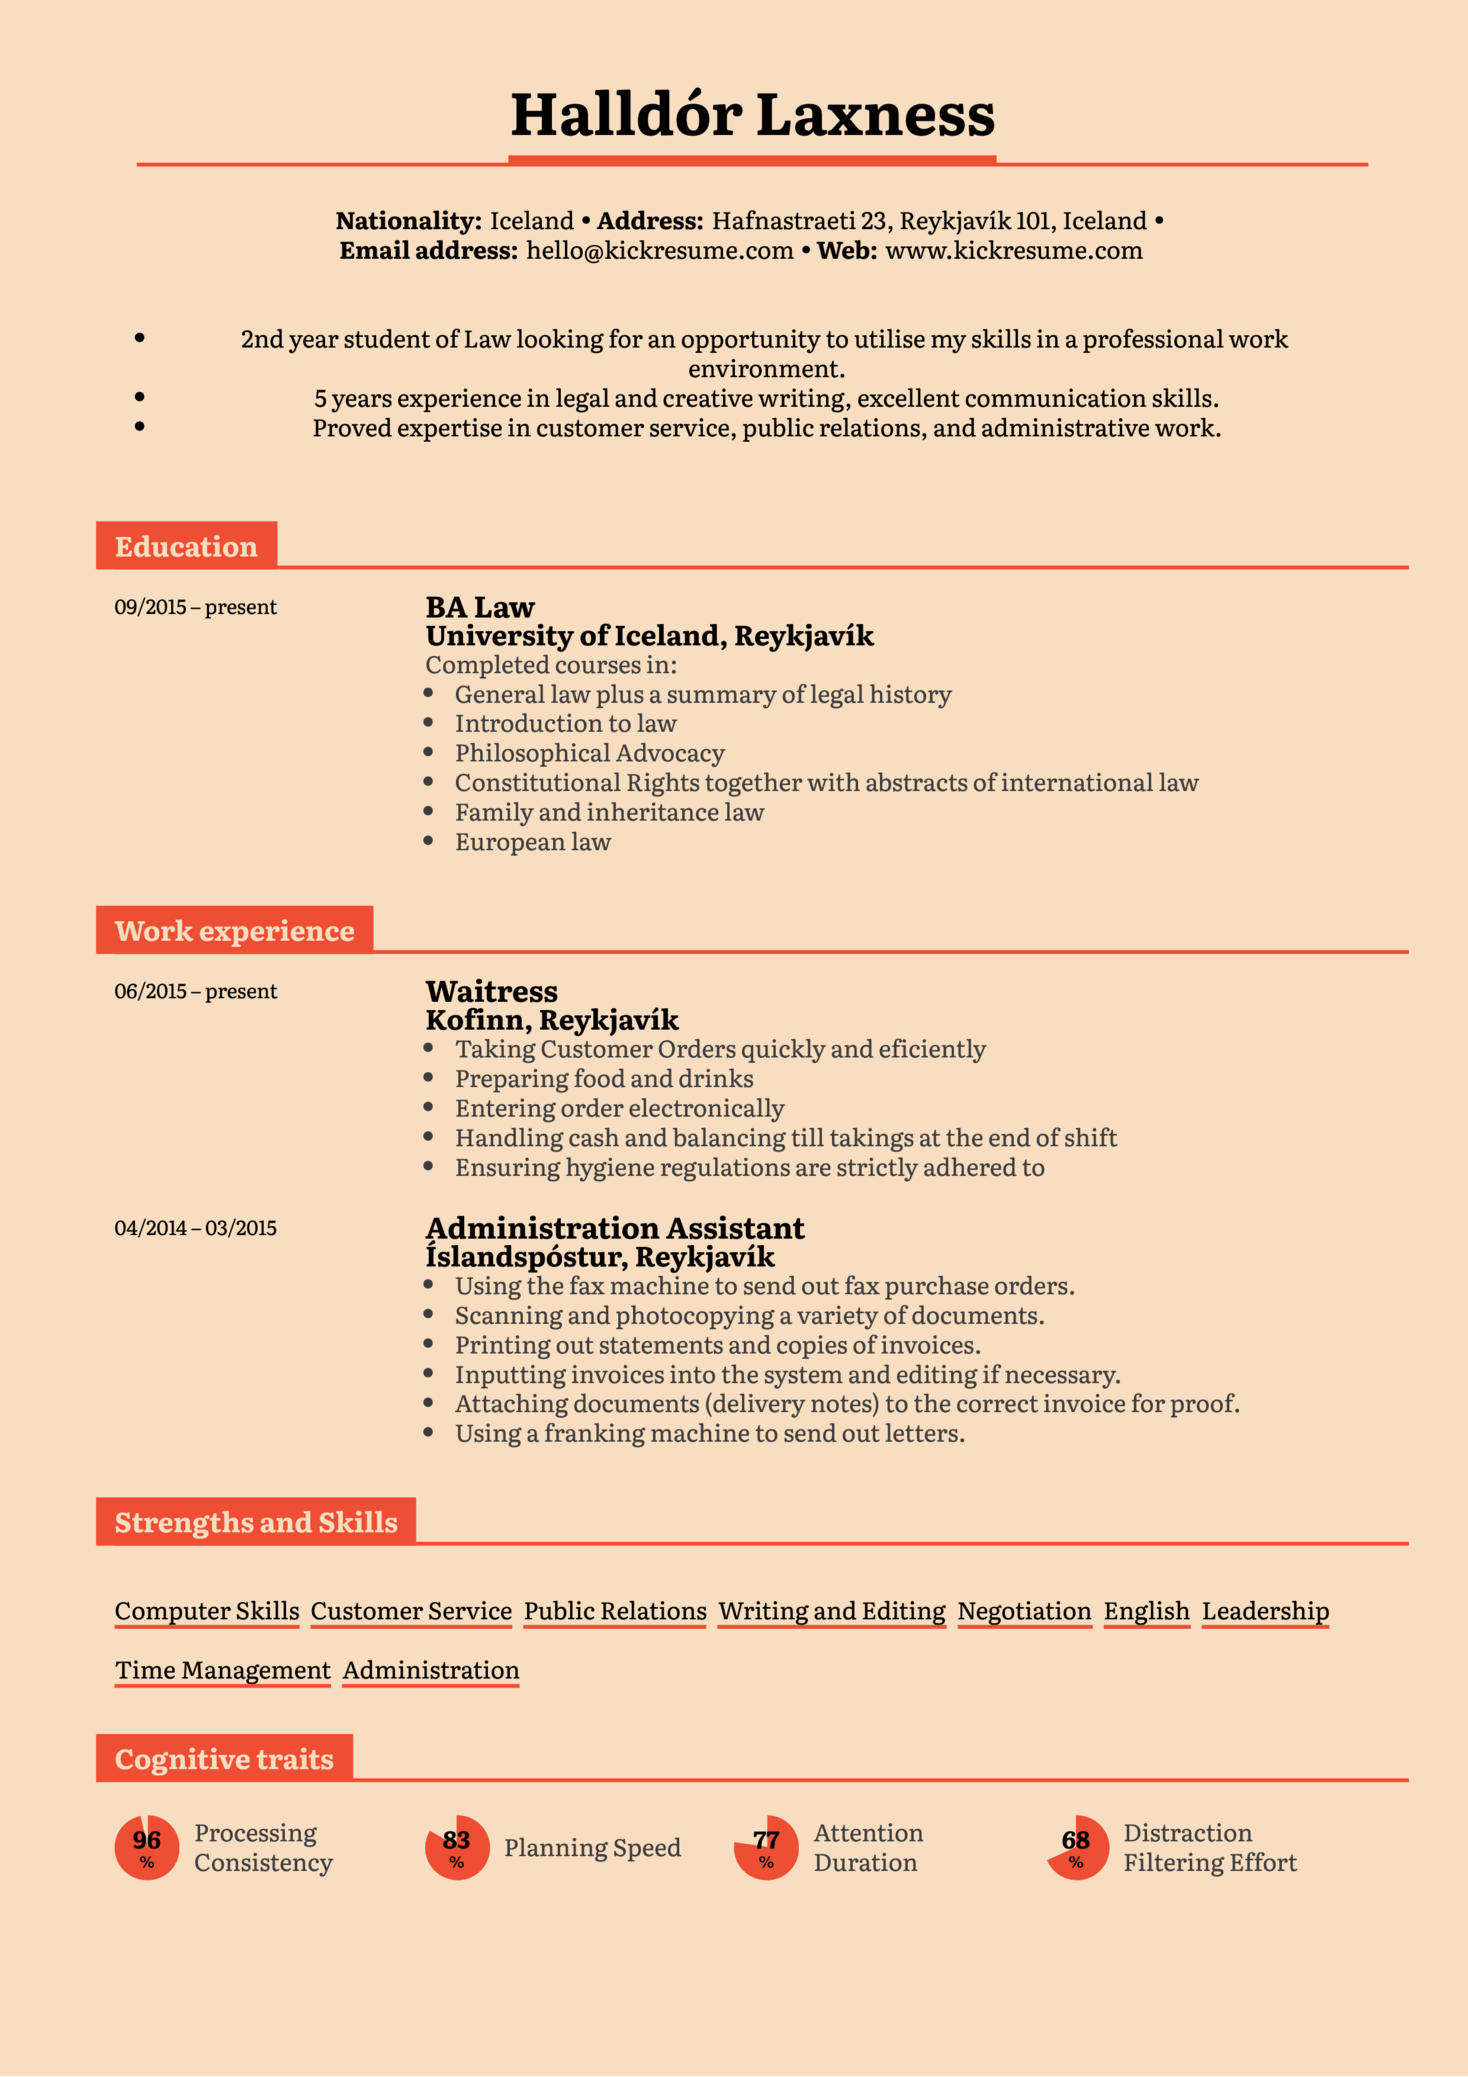 Student Resume Law Internship Kickresume